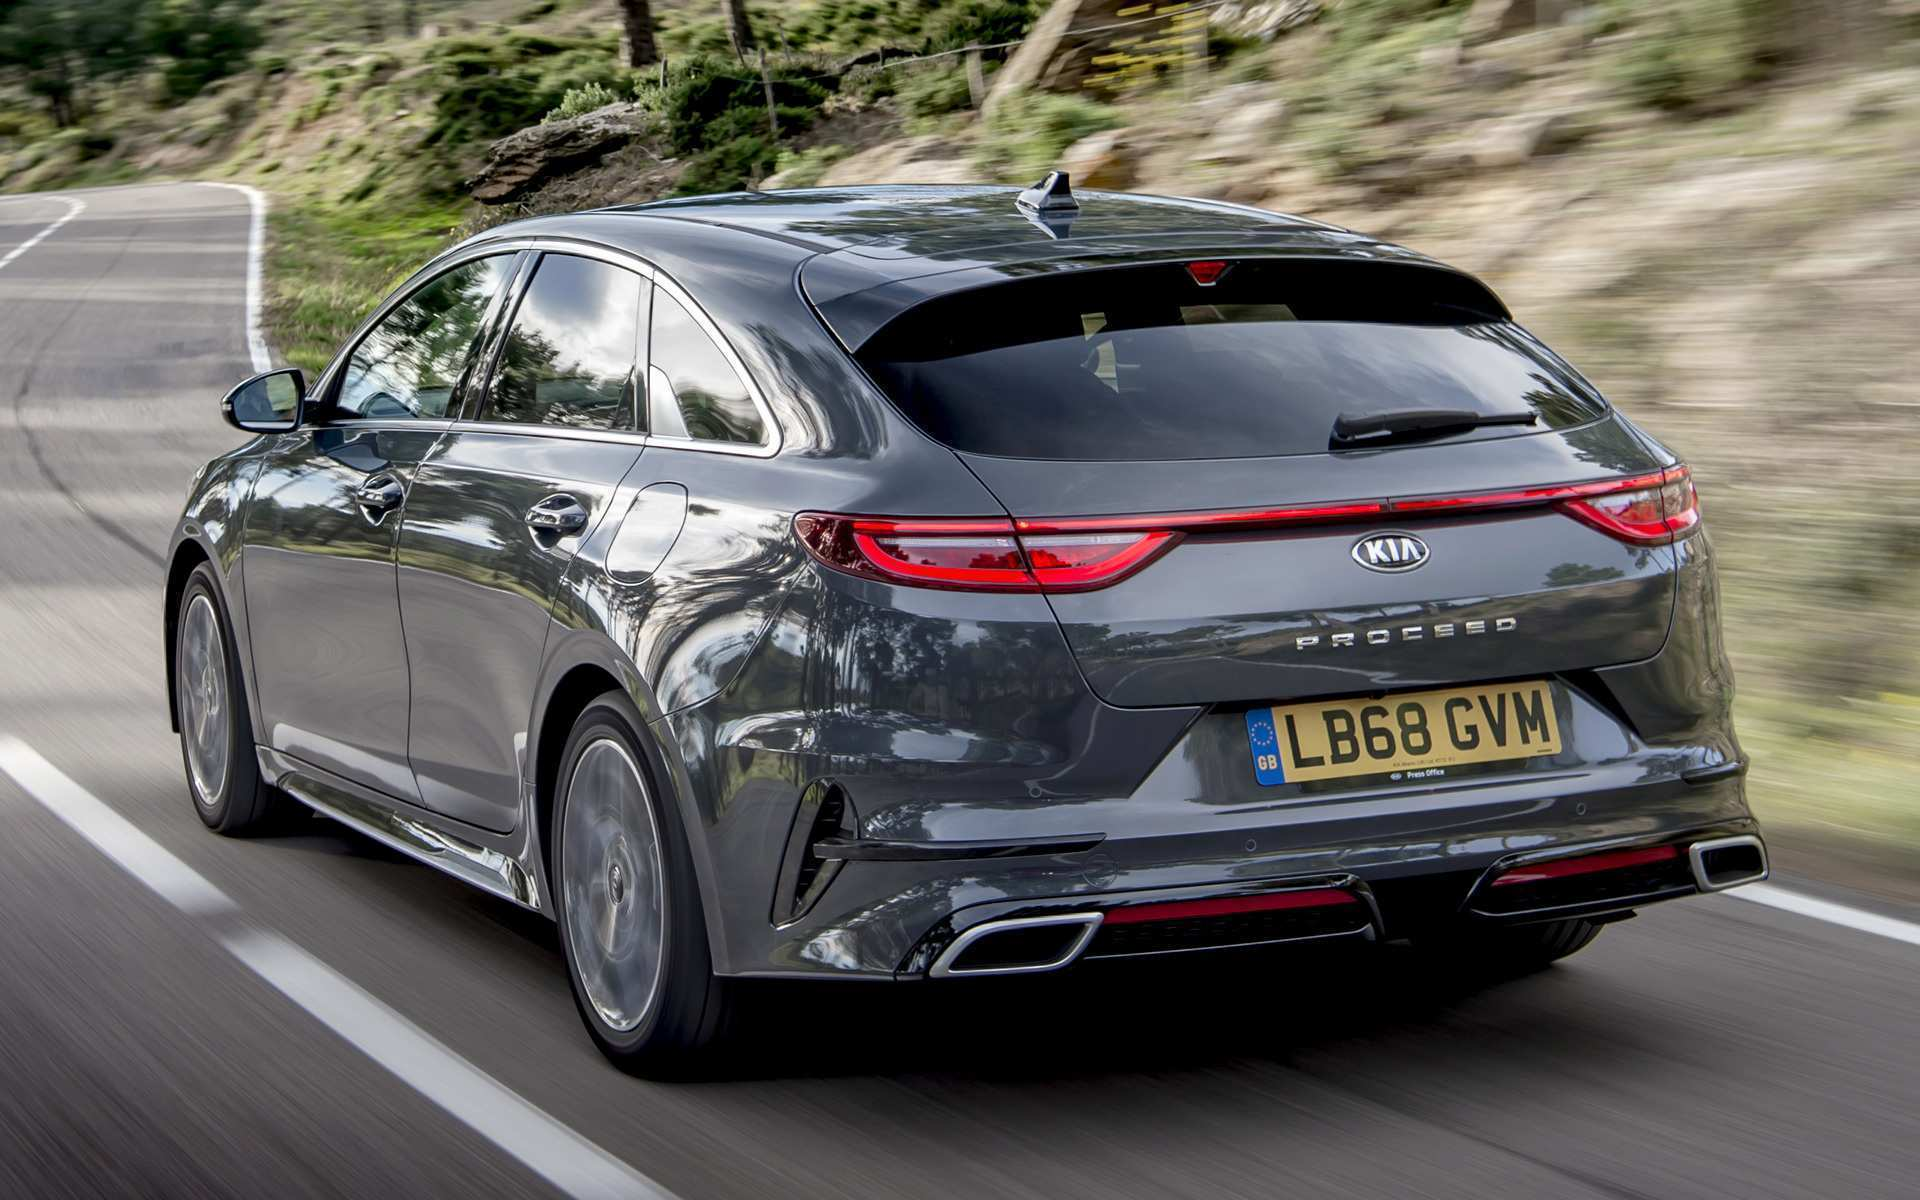 80 The Best Kia Pro Ceed Gt 2019 Redesign